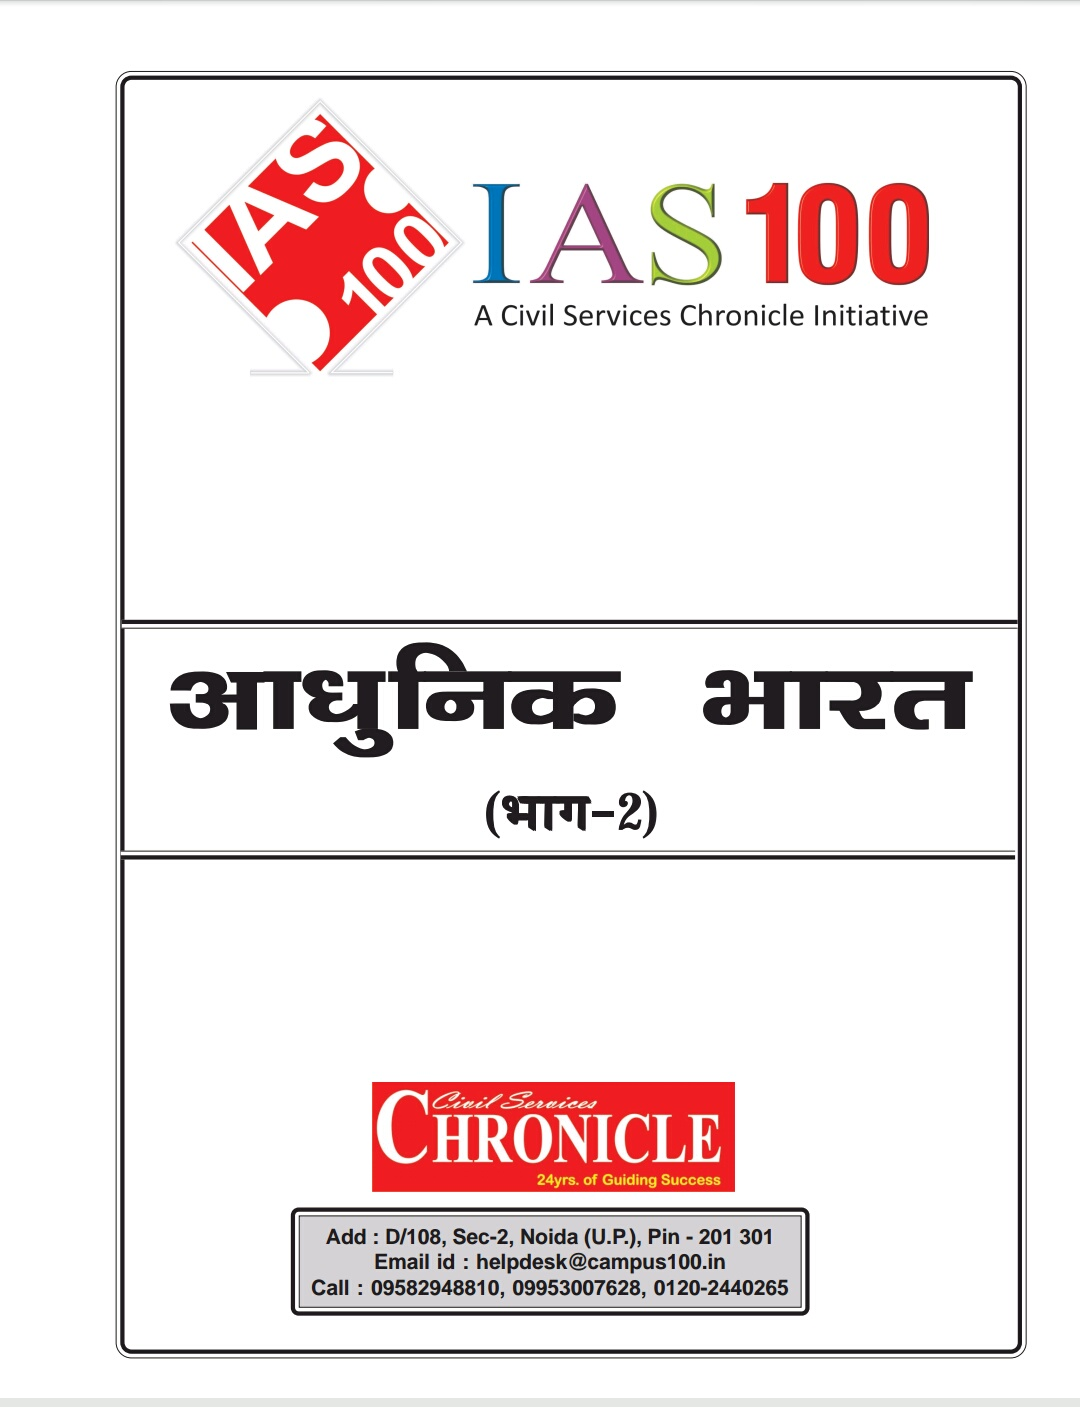 Modern history notes by chornicle in hindi